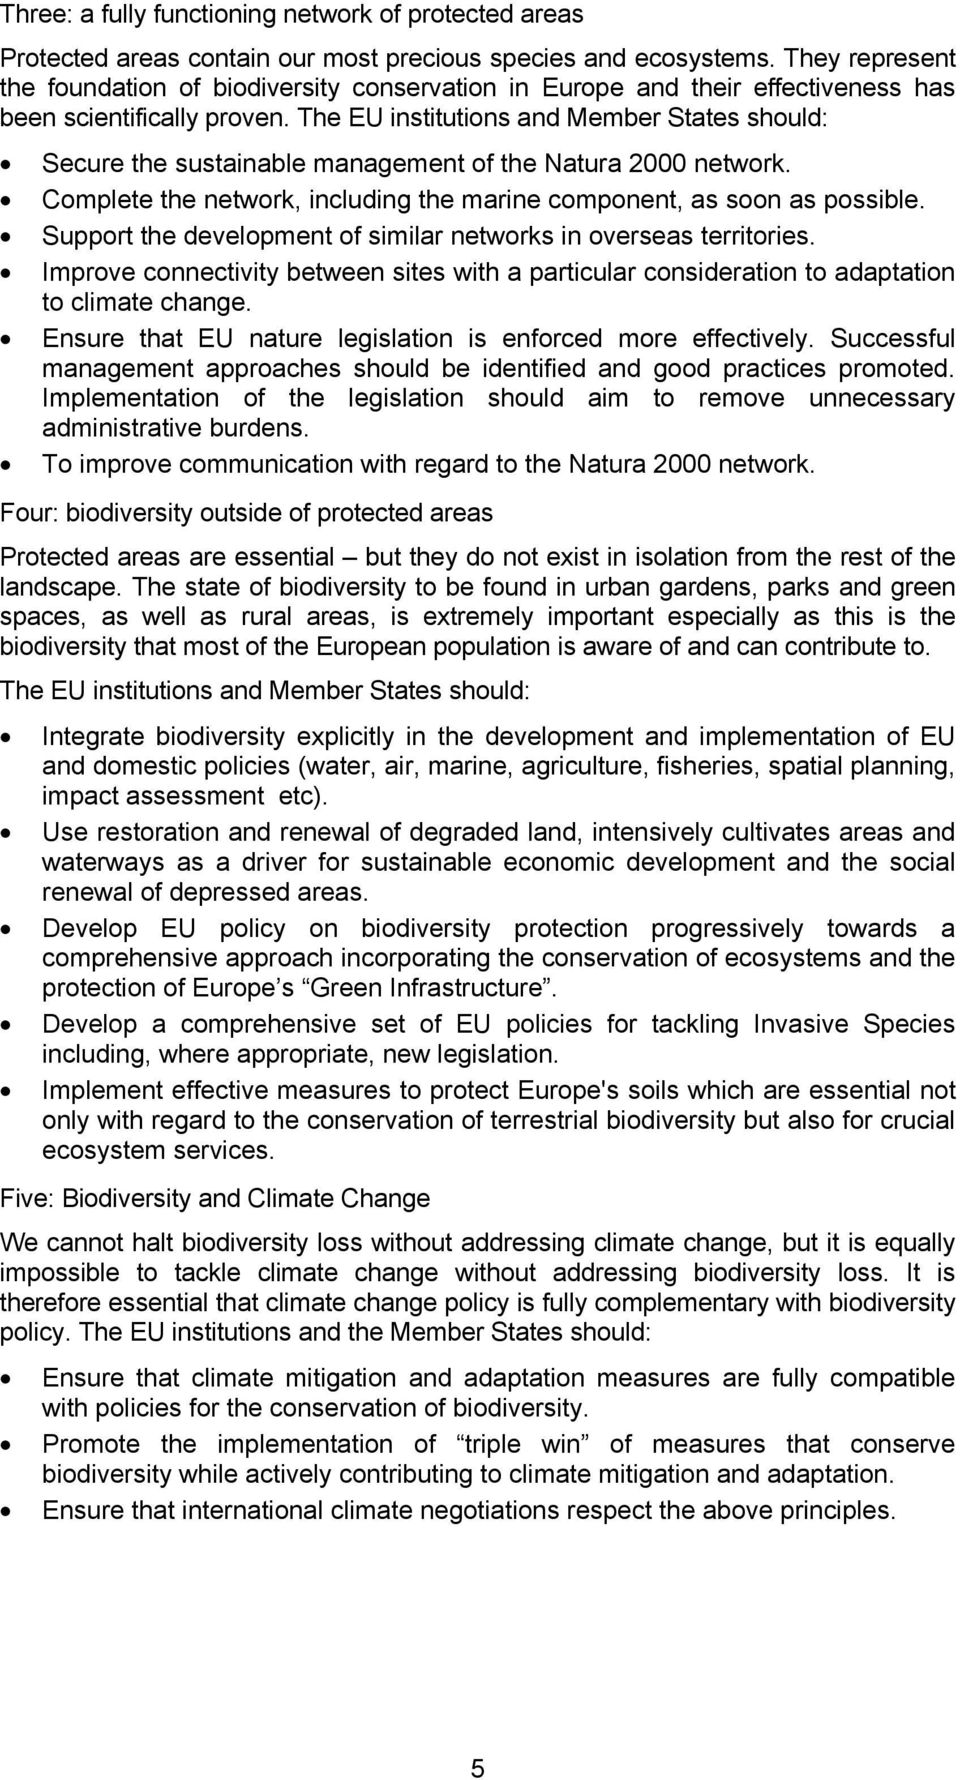 The EU institutions and Member States should: Secure the sustainable management of the Natura 2000 network. Complete the network, including the marine component, as soon as possible.